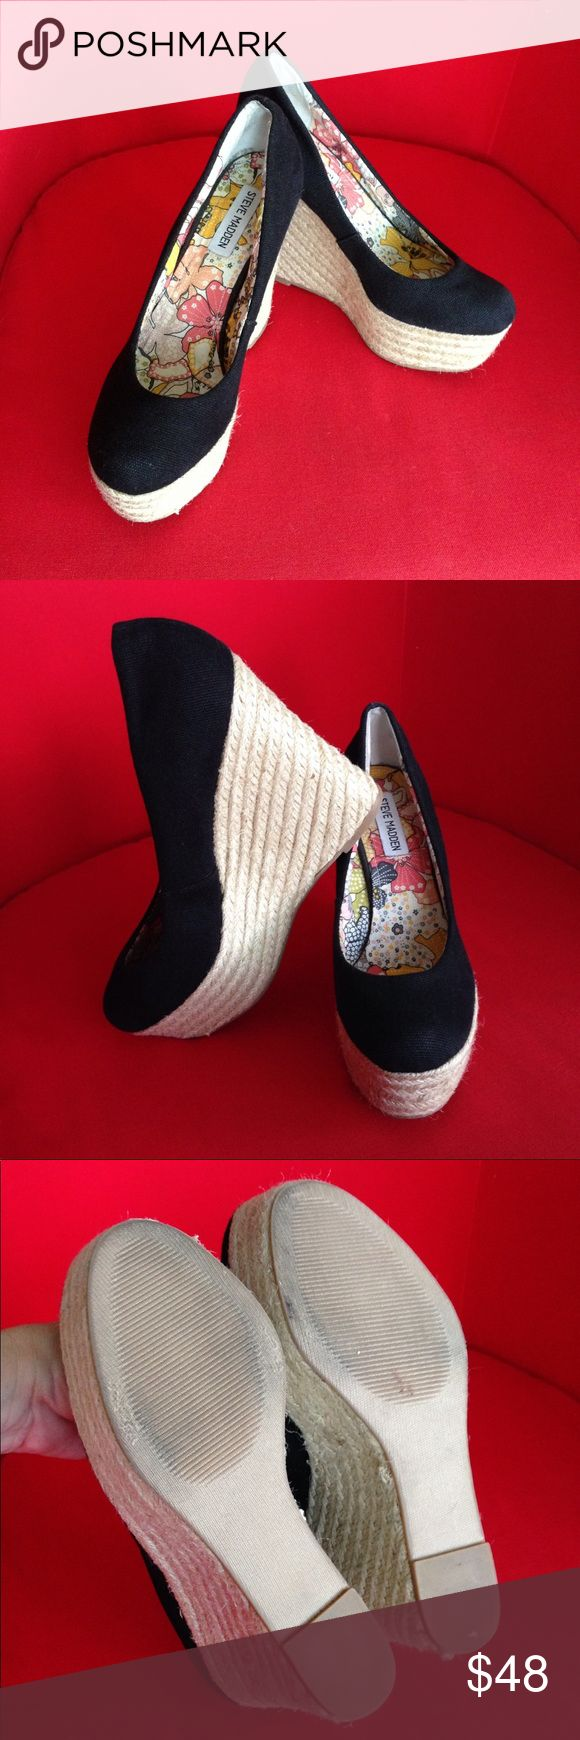 Steve Madden Marryy Black Espadrille Wedges Gently used but like new condition Steve Madden Women's 'Marryy' black canvas closed toe Espadrilles Platform Wedges. Size 8.5. Super stylish and sexy as Steve Madden kicks classic Spanish espadrille style to new heights. Steve Madden Shoes Espadrilles